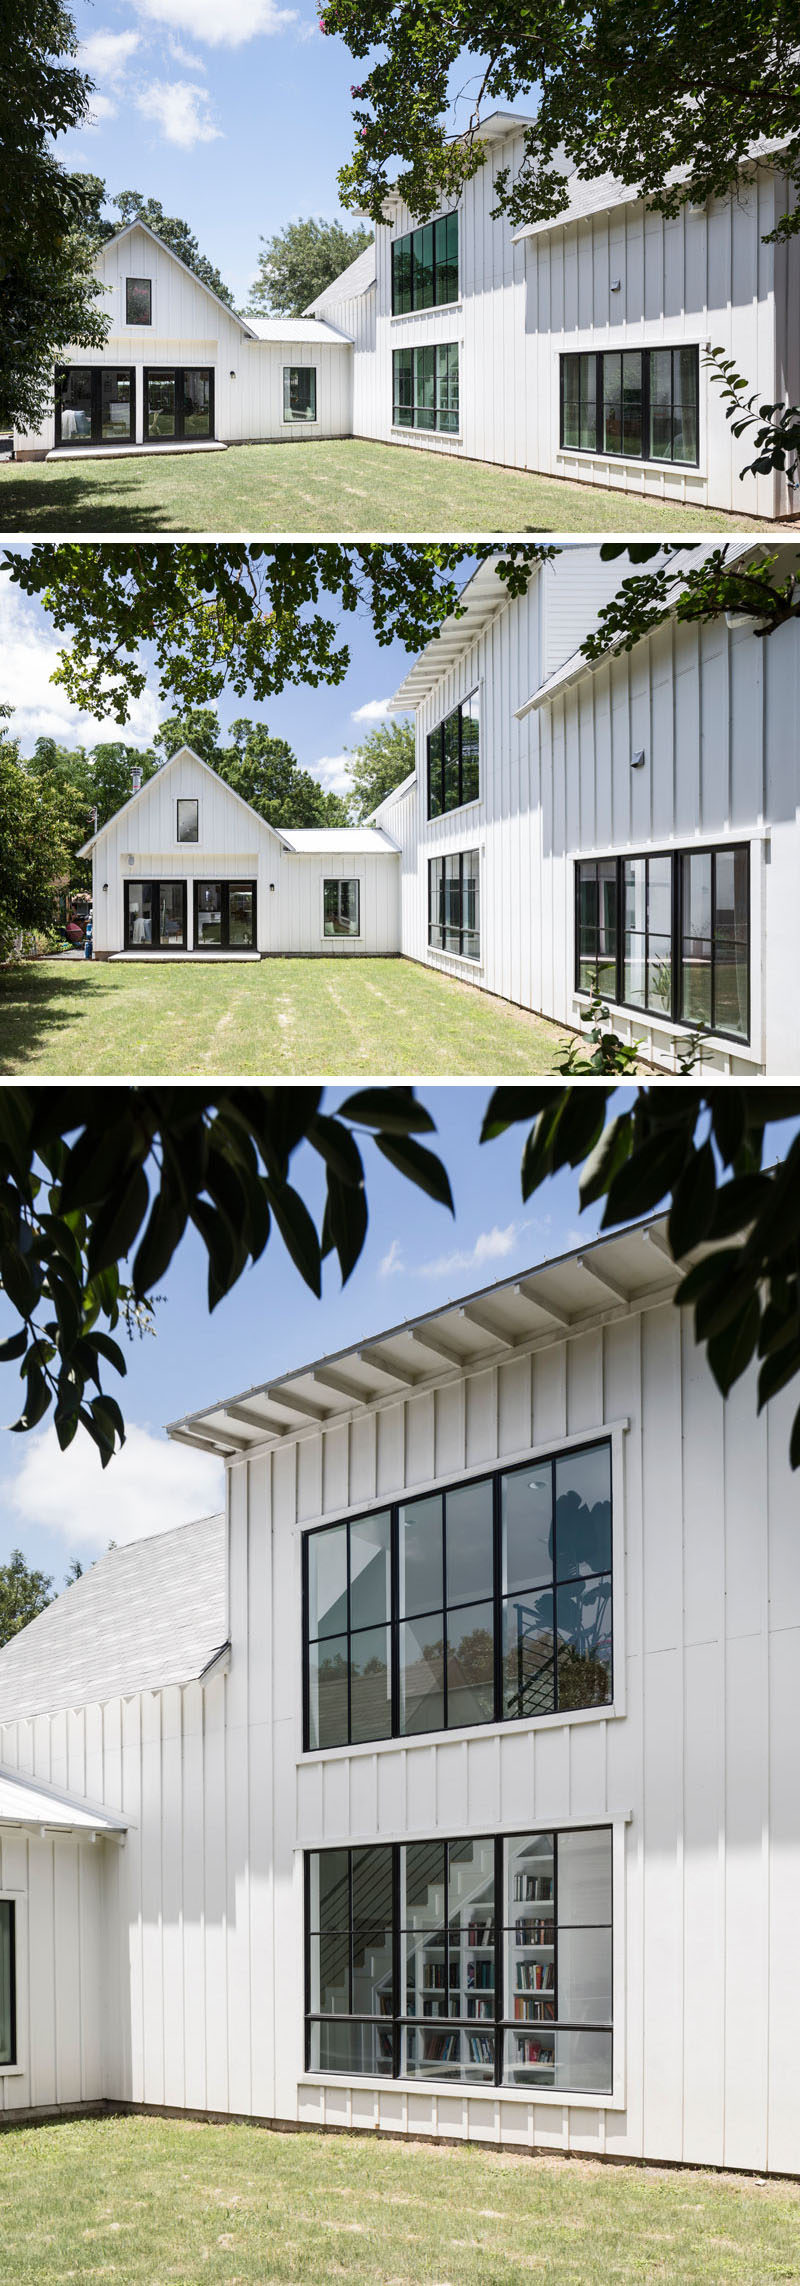 The backyard of this contemporary house is a large open space with plenty of grass, while back window frames create a strong contrast against the white exterior of the house. #BlackWindowFrames #Backyard